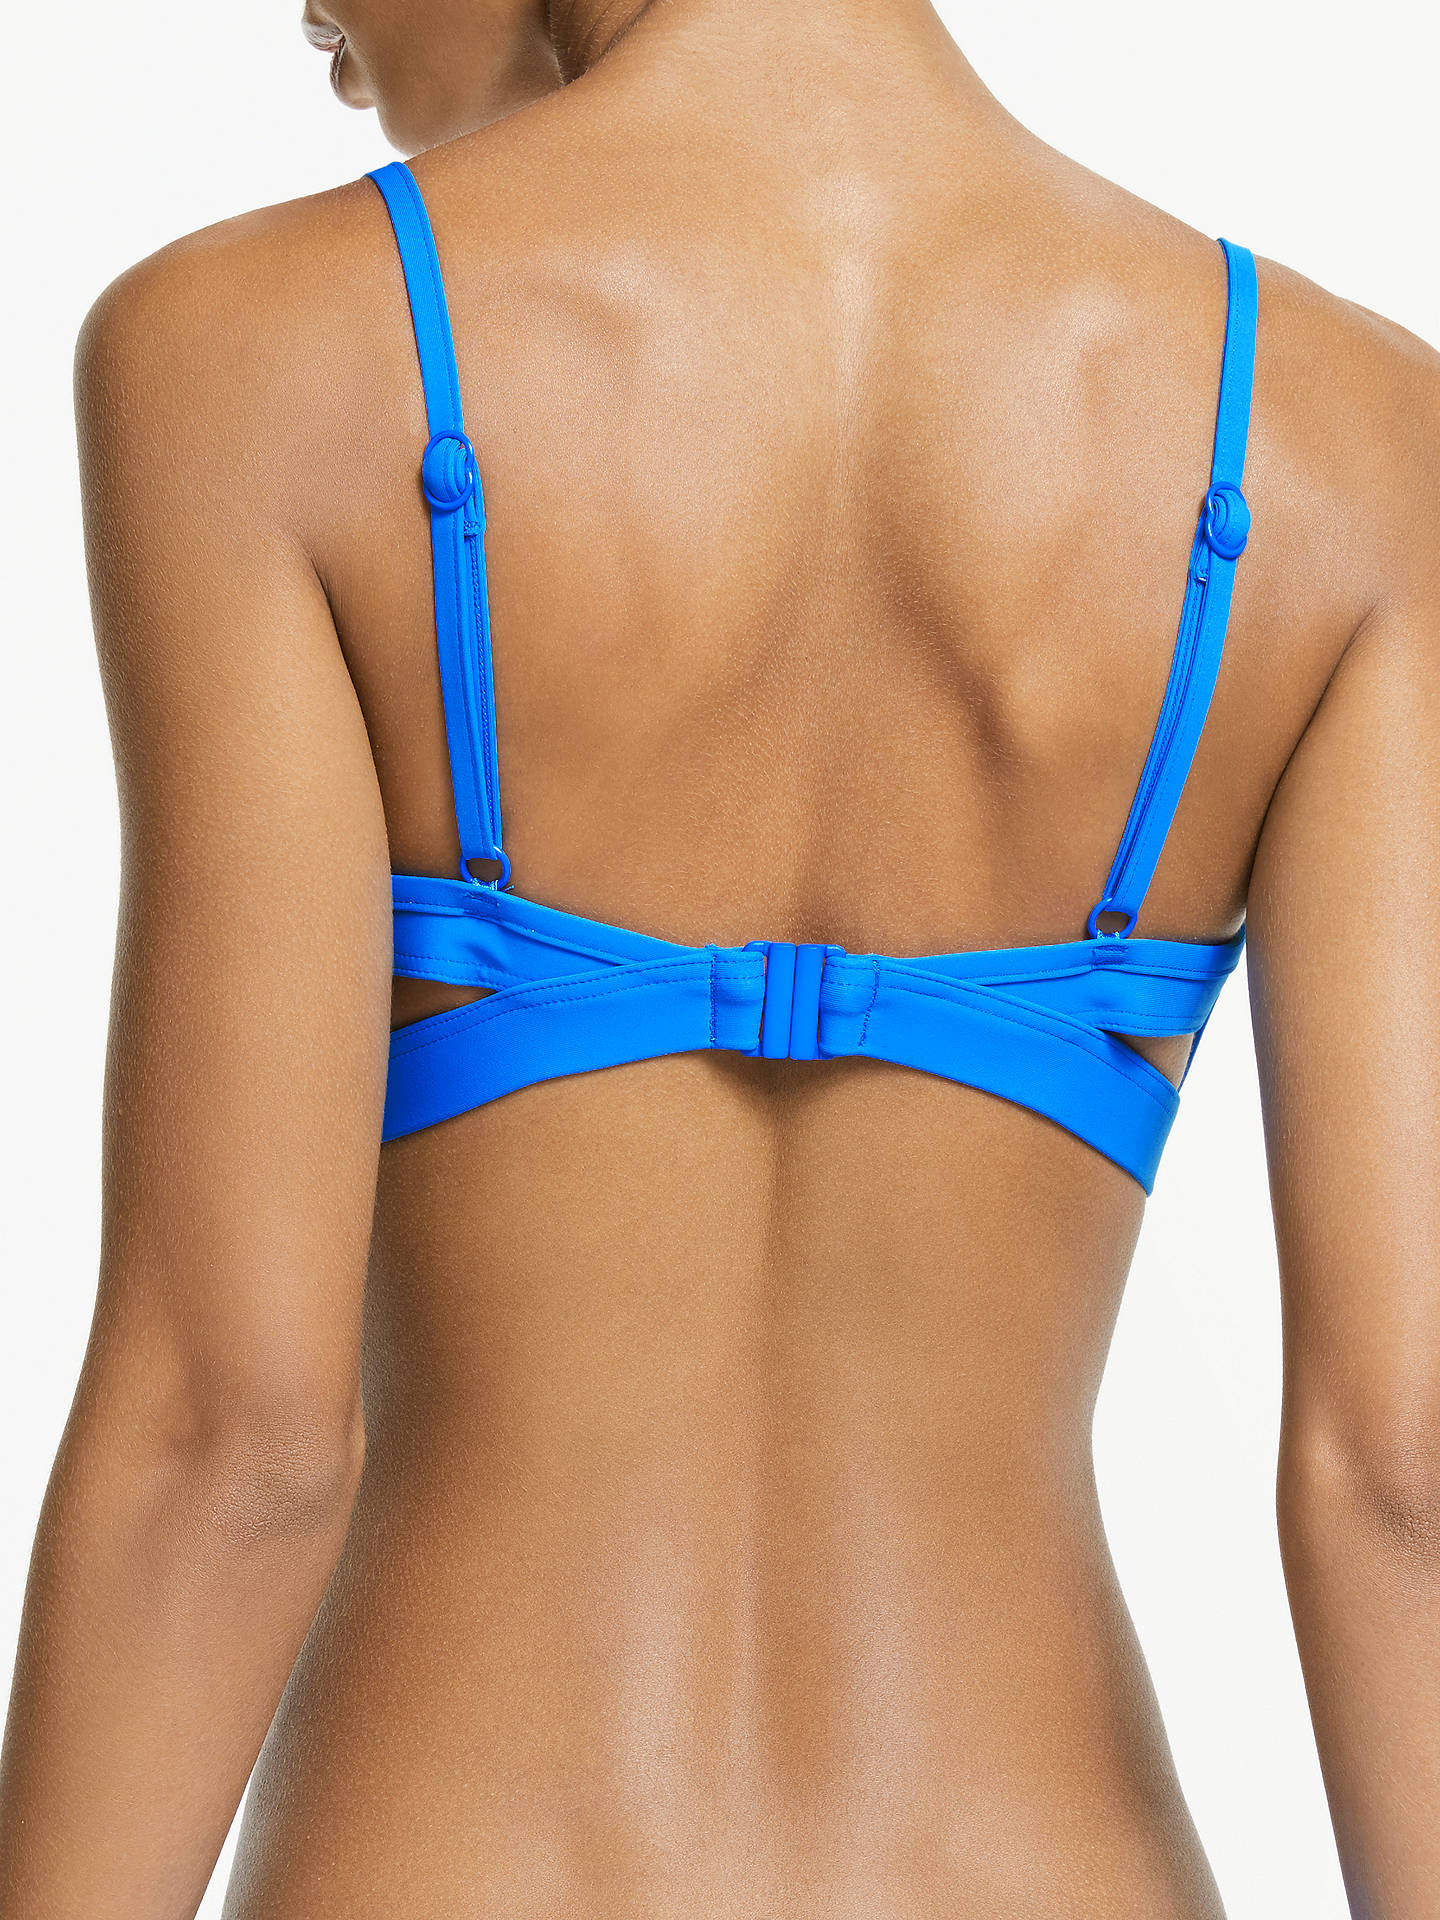 BuySeafolly Active Swim Hybrid Bralette Bikini Top, Electric Blue, 8 Online at johnlewis.com